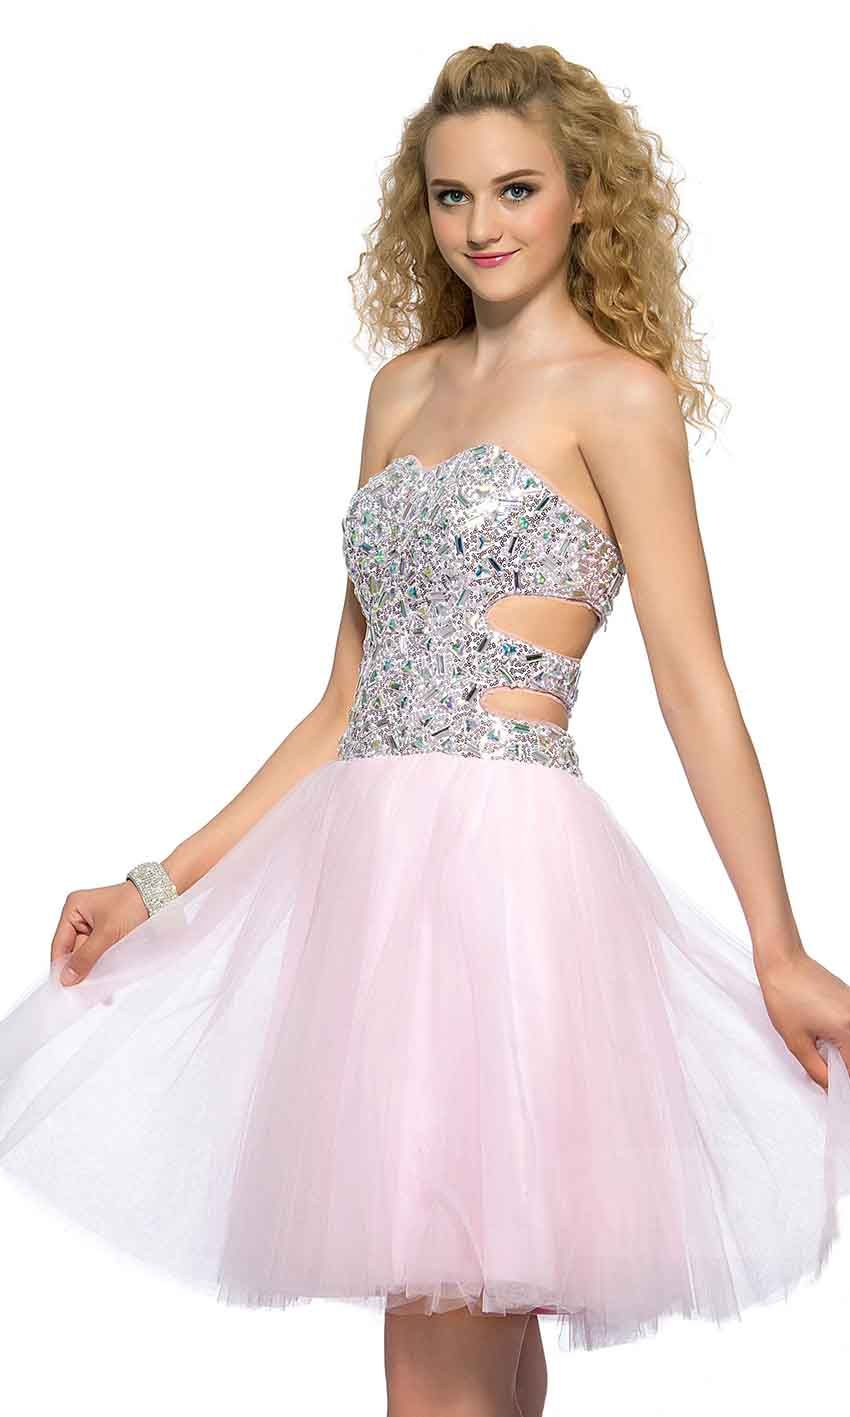 Cut Out Sweetheart Glitter Short Pink Prom Dresses UK KSP394 | uk ...